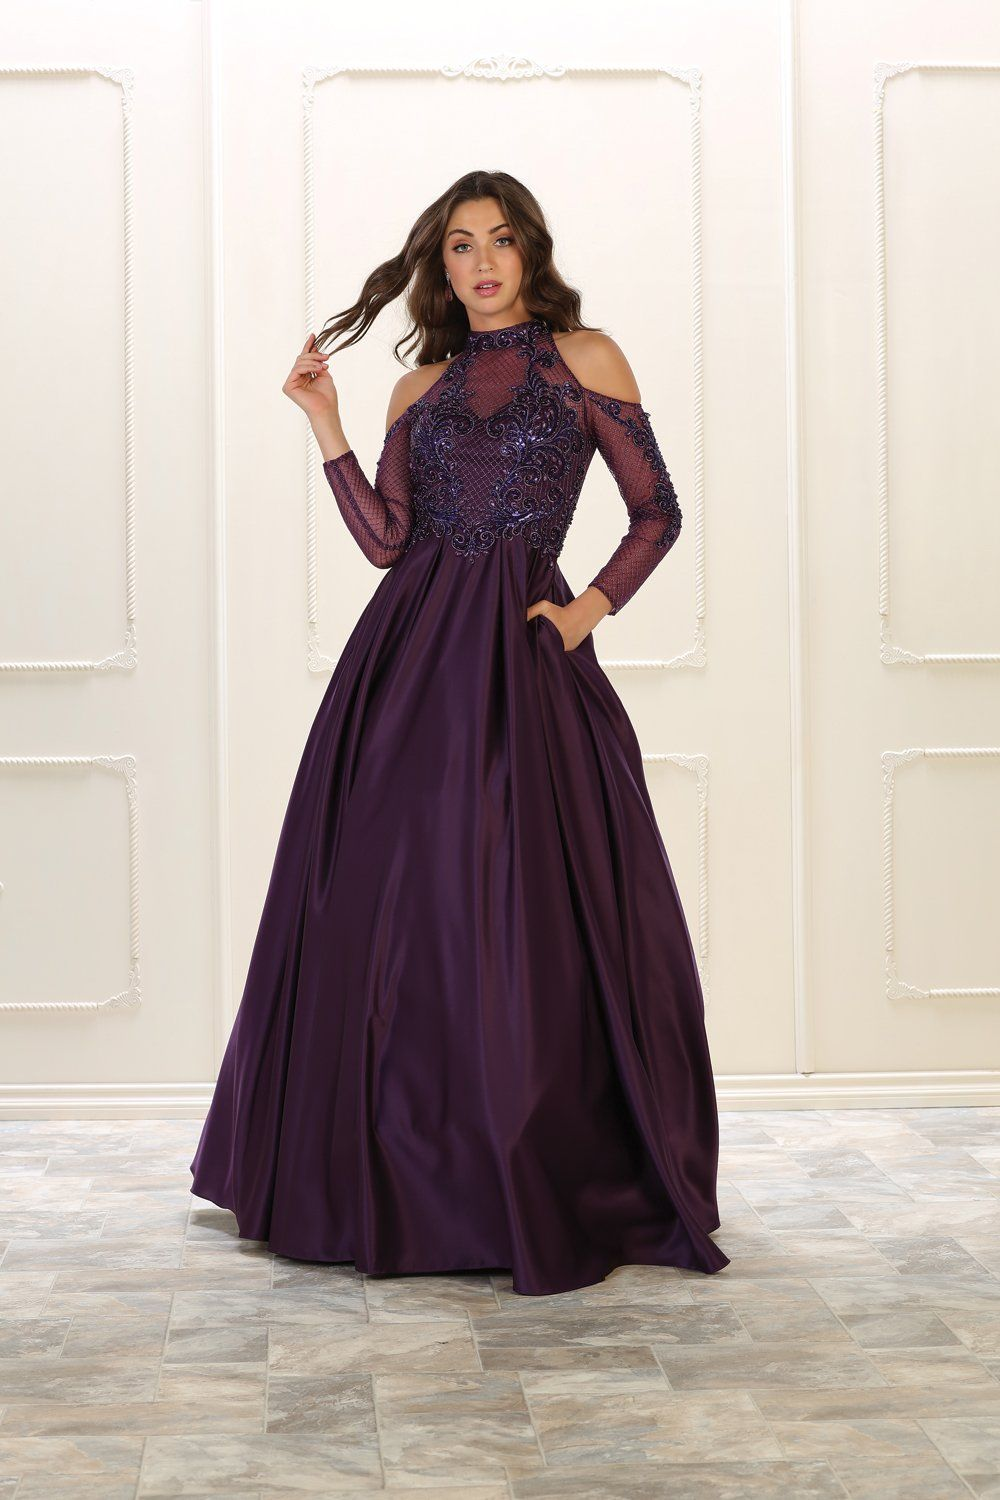 Long sleeve prom dress formal ball gown pinterest taffeta skirt